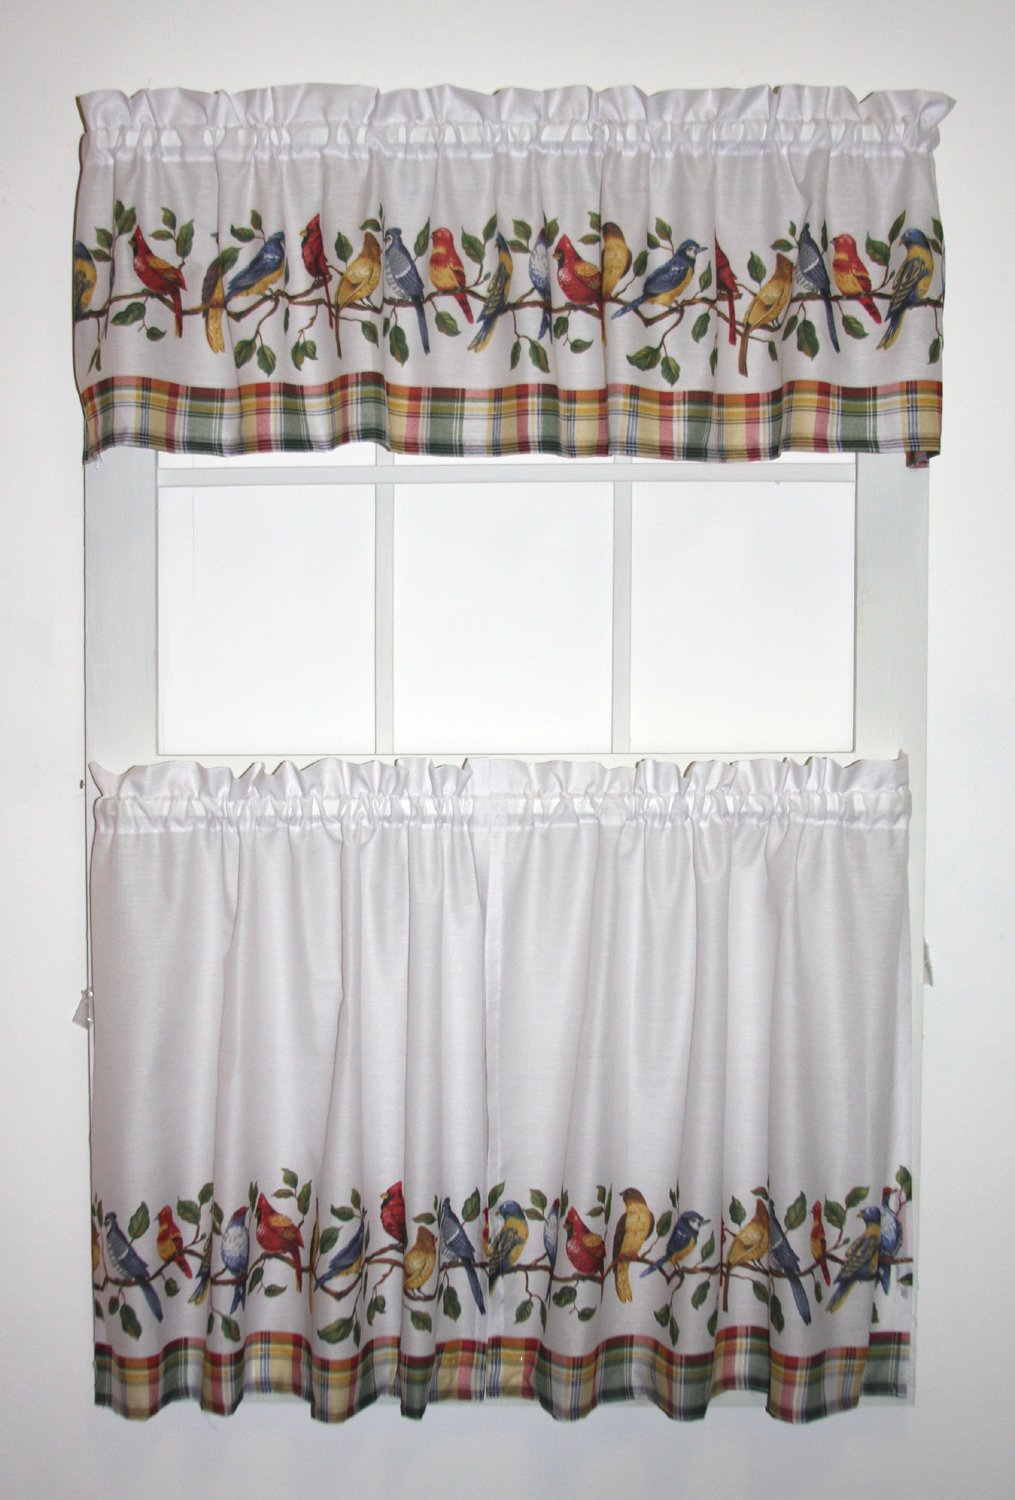 Songbirds White Tailored Tiers Curtains and Valance 3 Piece Set with Birds - Cardinals and Blue Jays (36-inch Long)